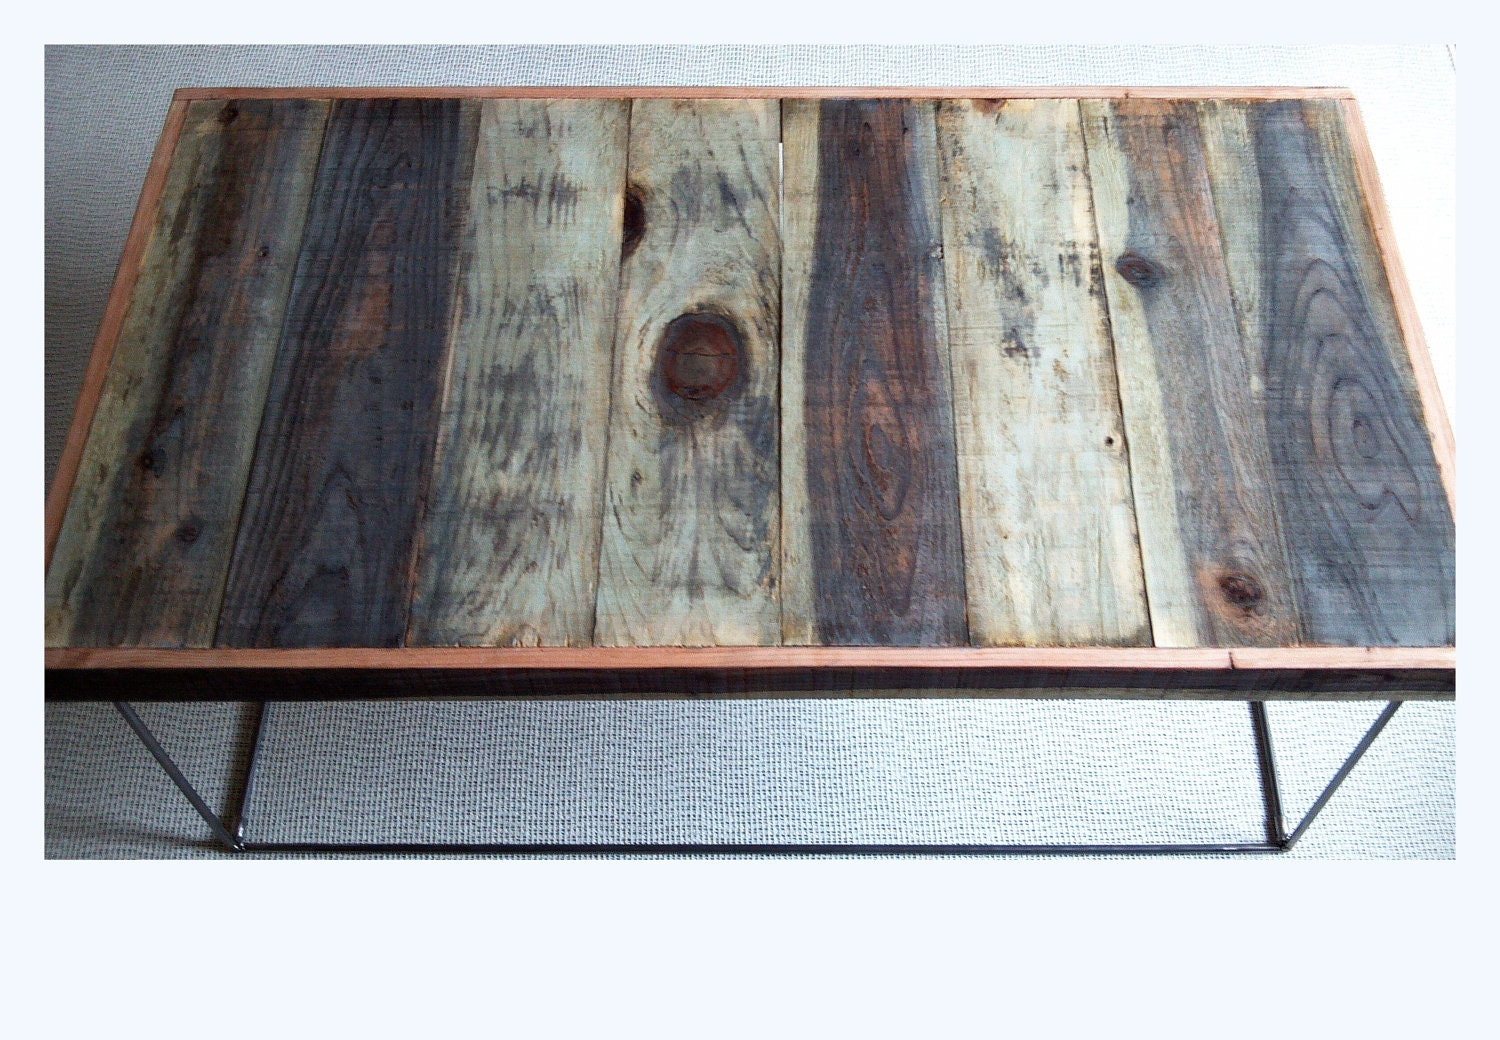 Barnwood Coffee Table - Industrial Furniture - Rustic Barnwood Coffee Table with Box Top and Steel Box Frame